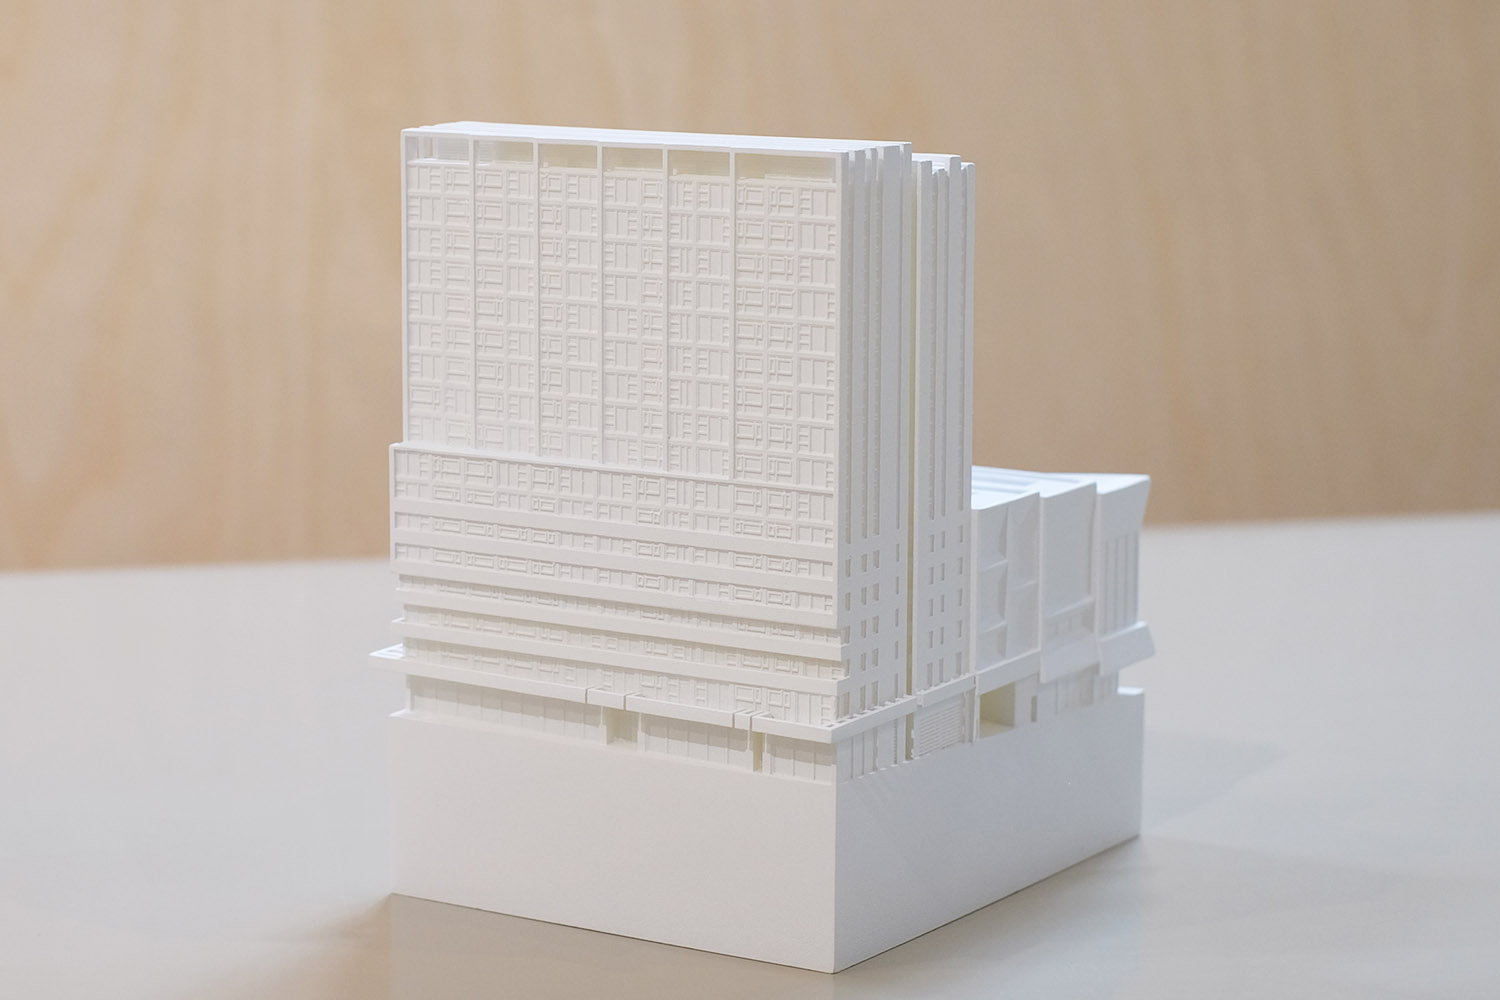 City of Sydney DA model 1_500 Green Square Site 7a.jpg